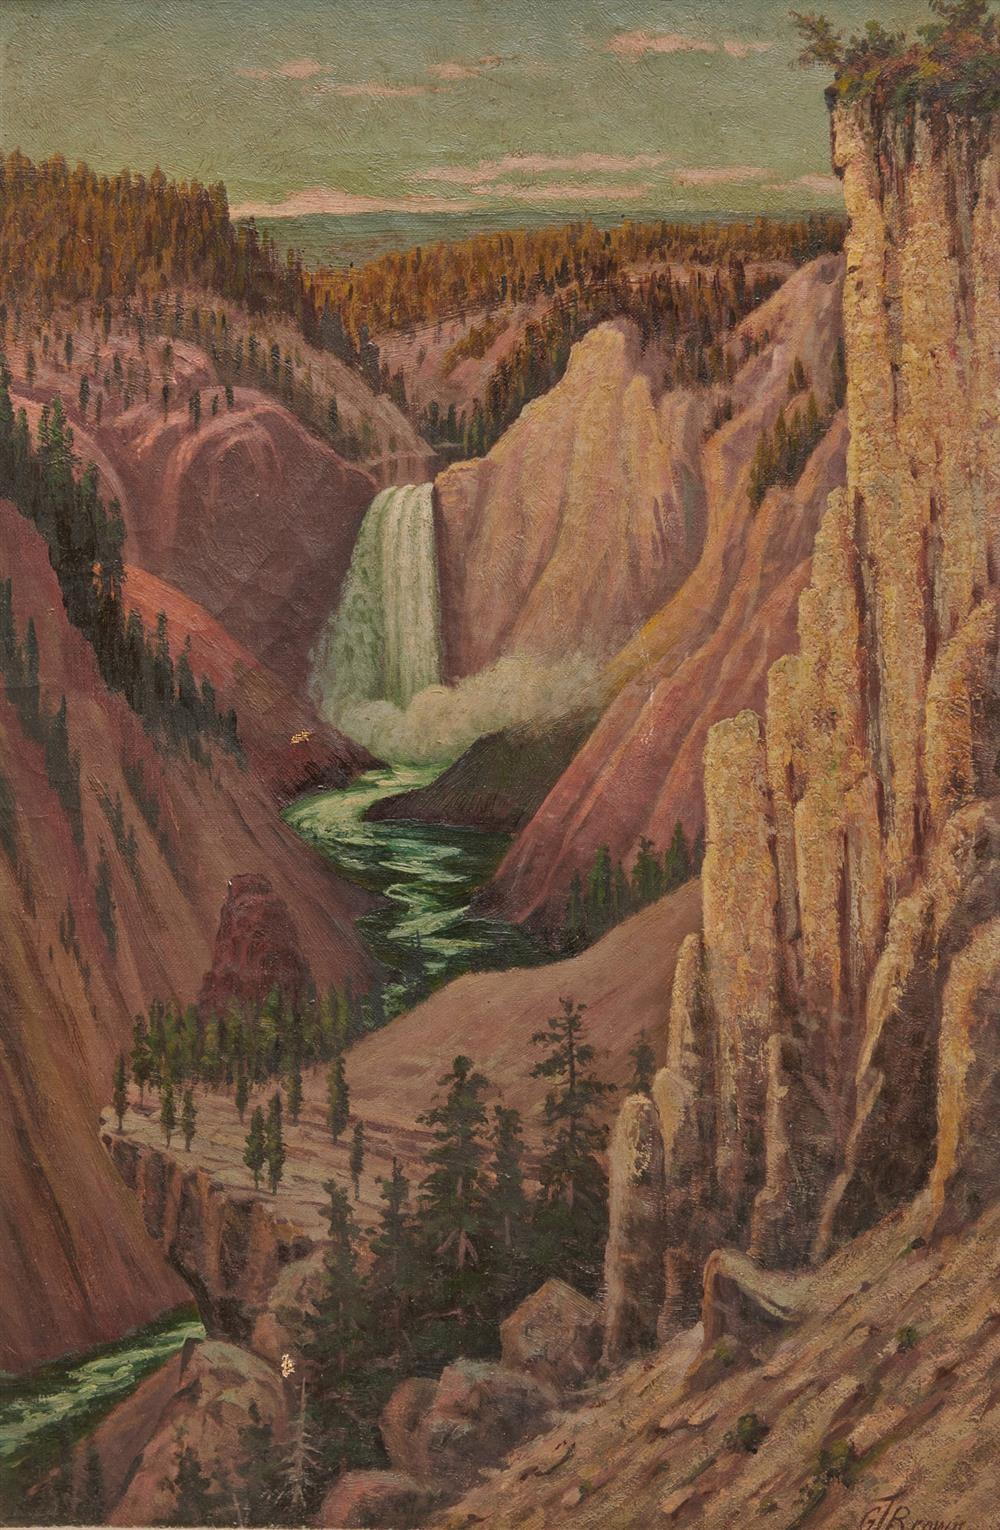 GRAFTON TYLER BROWN, (American, 1841-1918), Lower Falls and Grand Canyon of Yellowstone from Hayden Point, oil on canvas, 21 x 14 in., frame: 28 x 21 1/2 in.